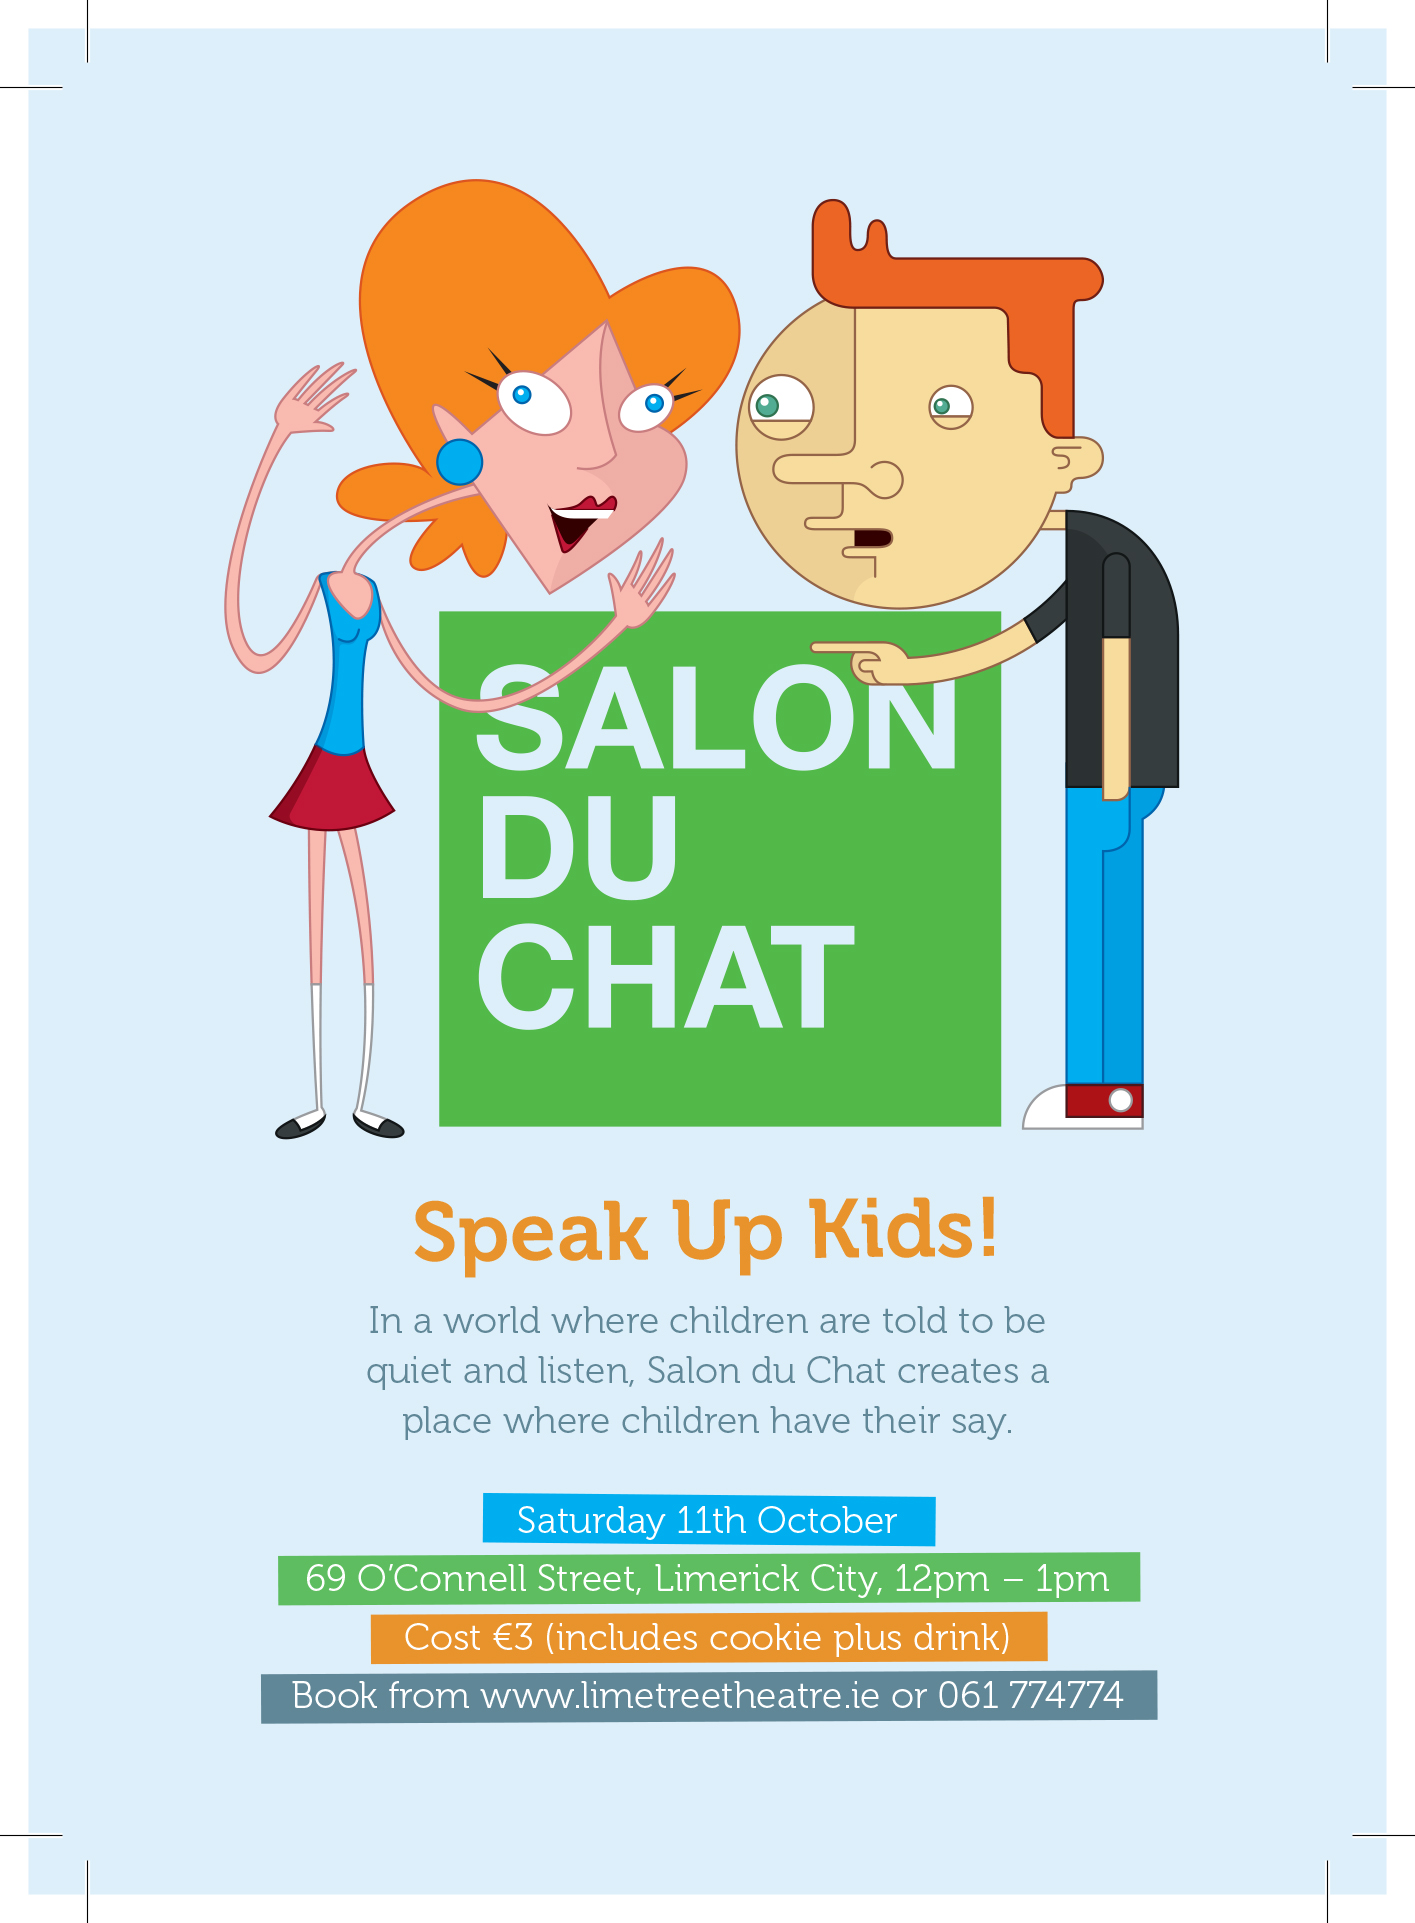 Poster for Salon du Chat for Kids